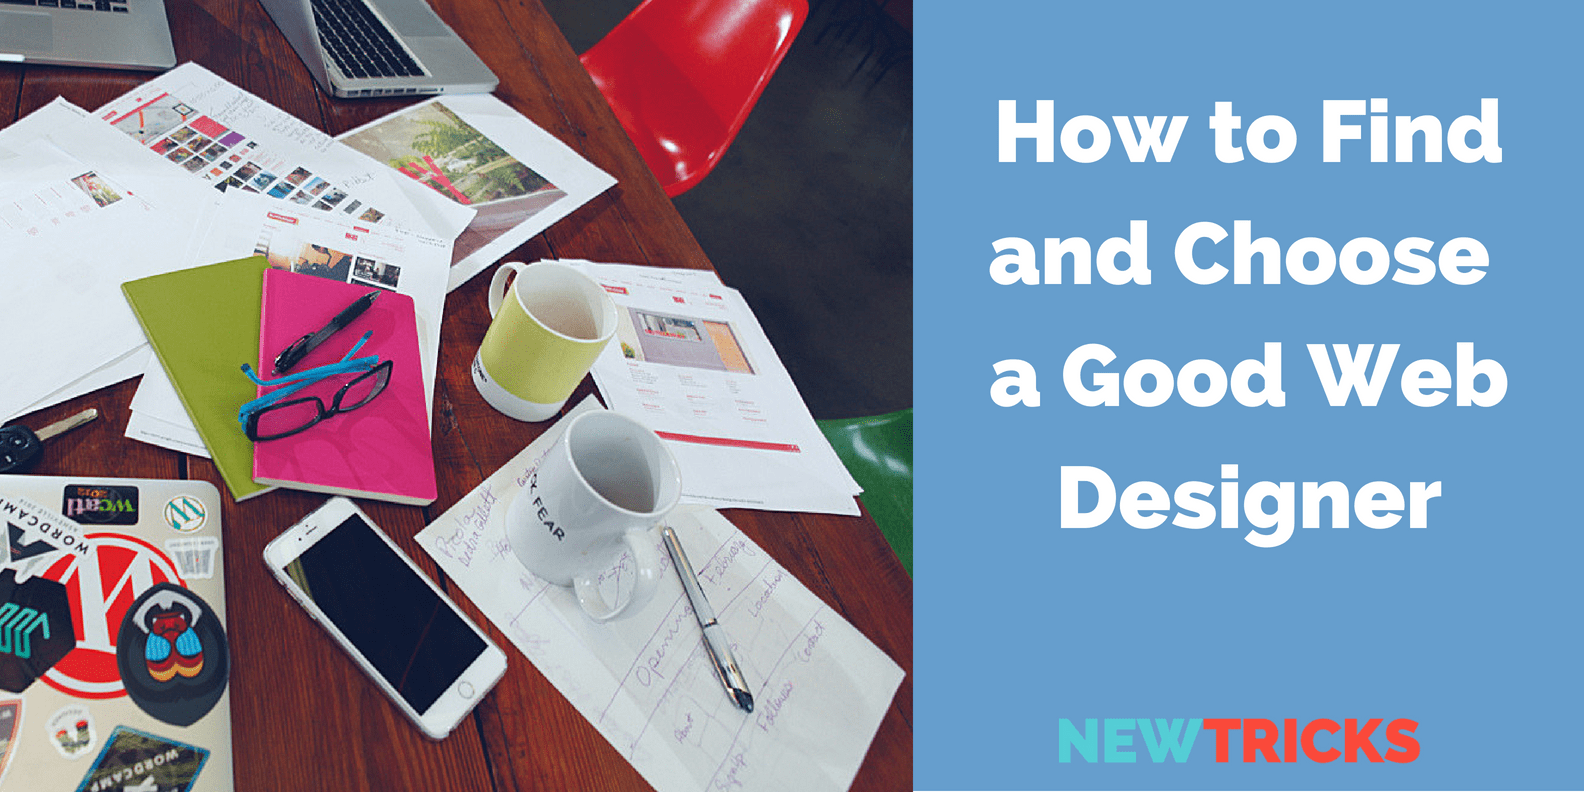 How To Find A Good Web Designer New Tricks